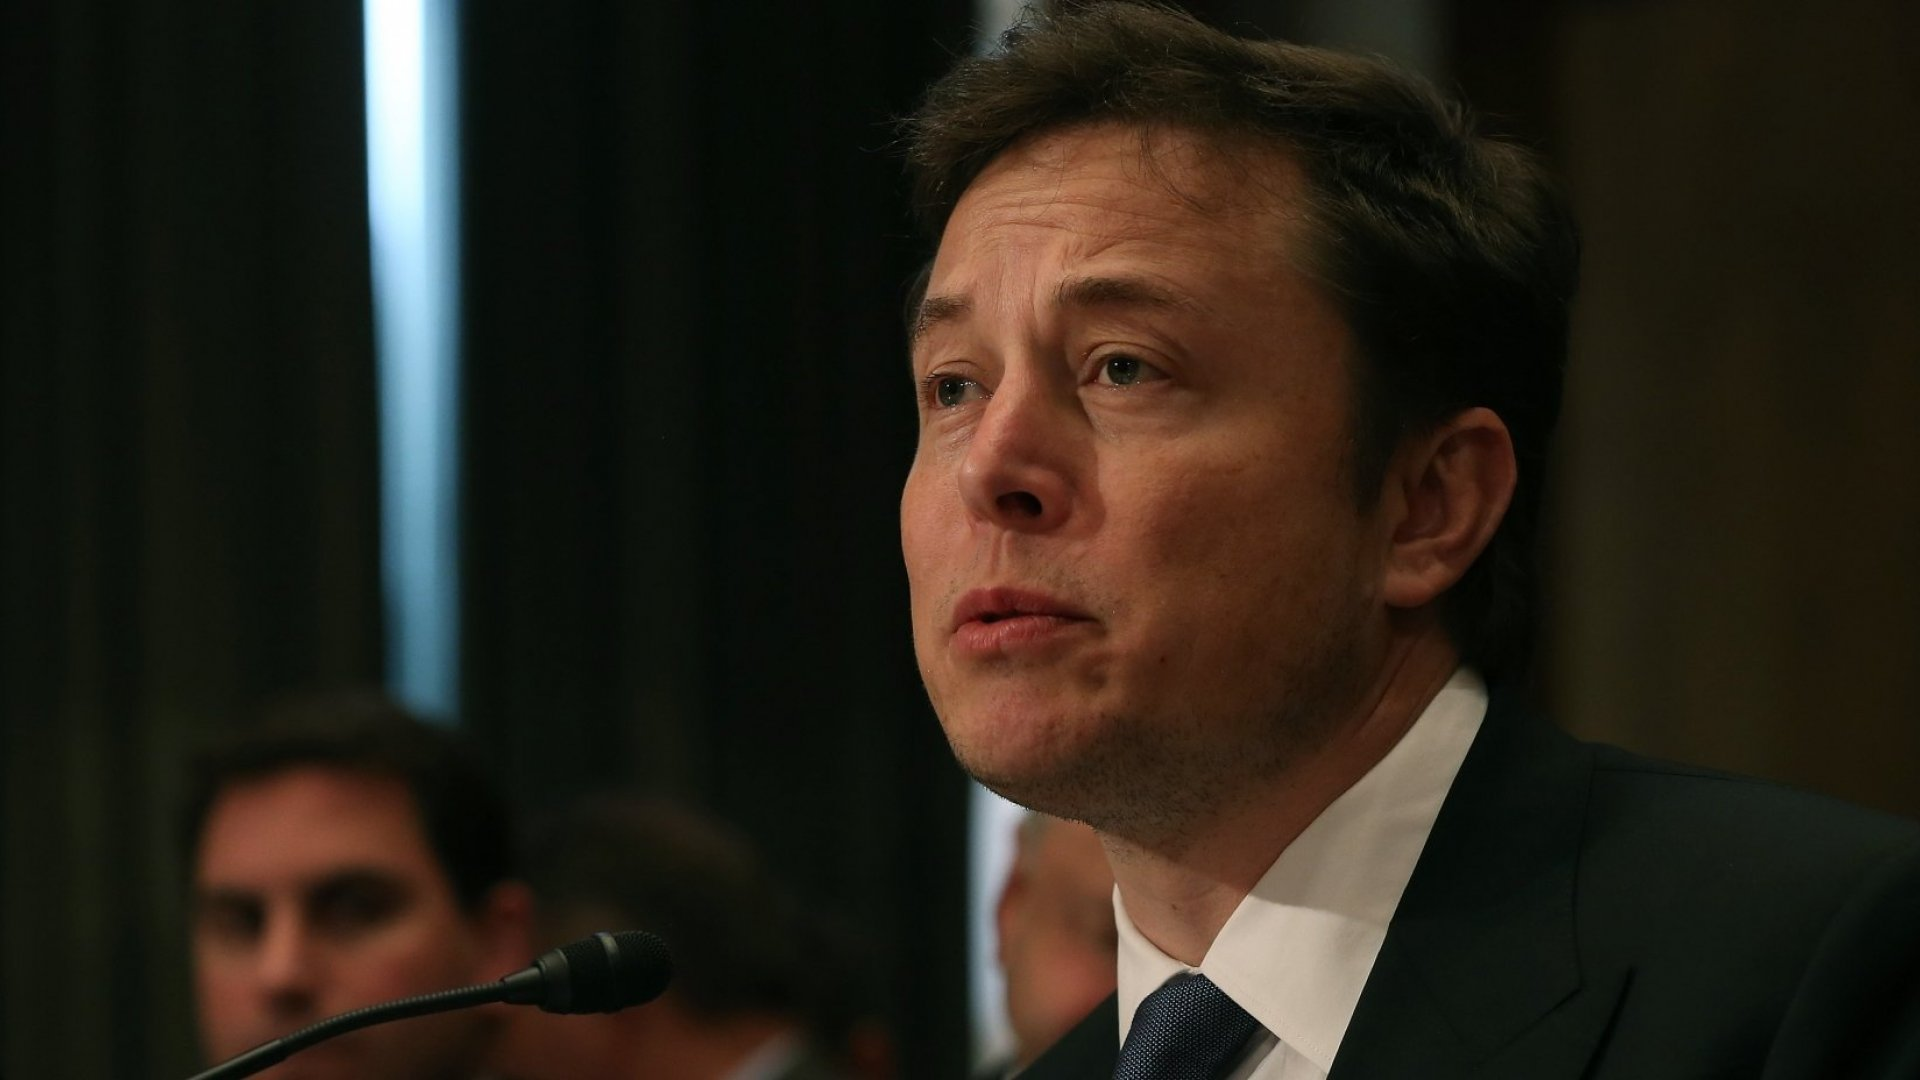 Here's What an Astronaut Thinks of Elon Musk's Plan to Send Tourists Around the Moon